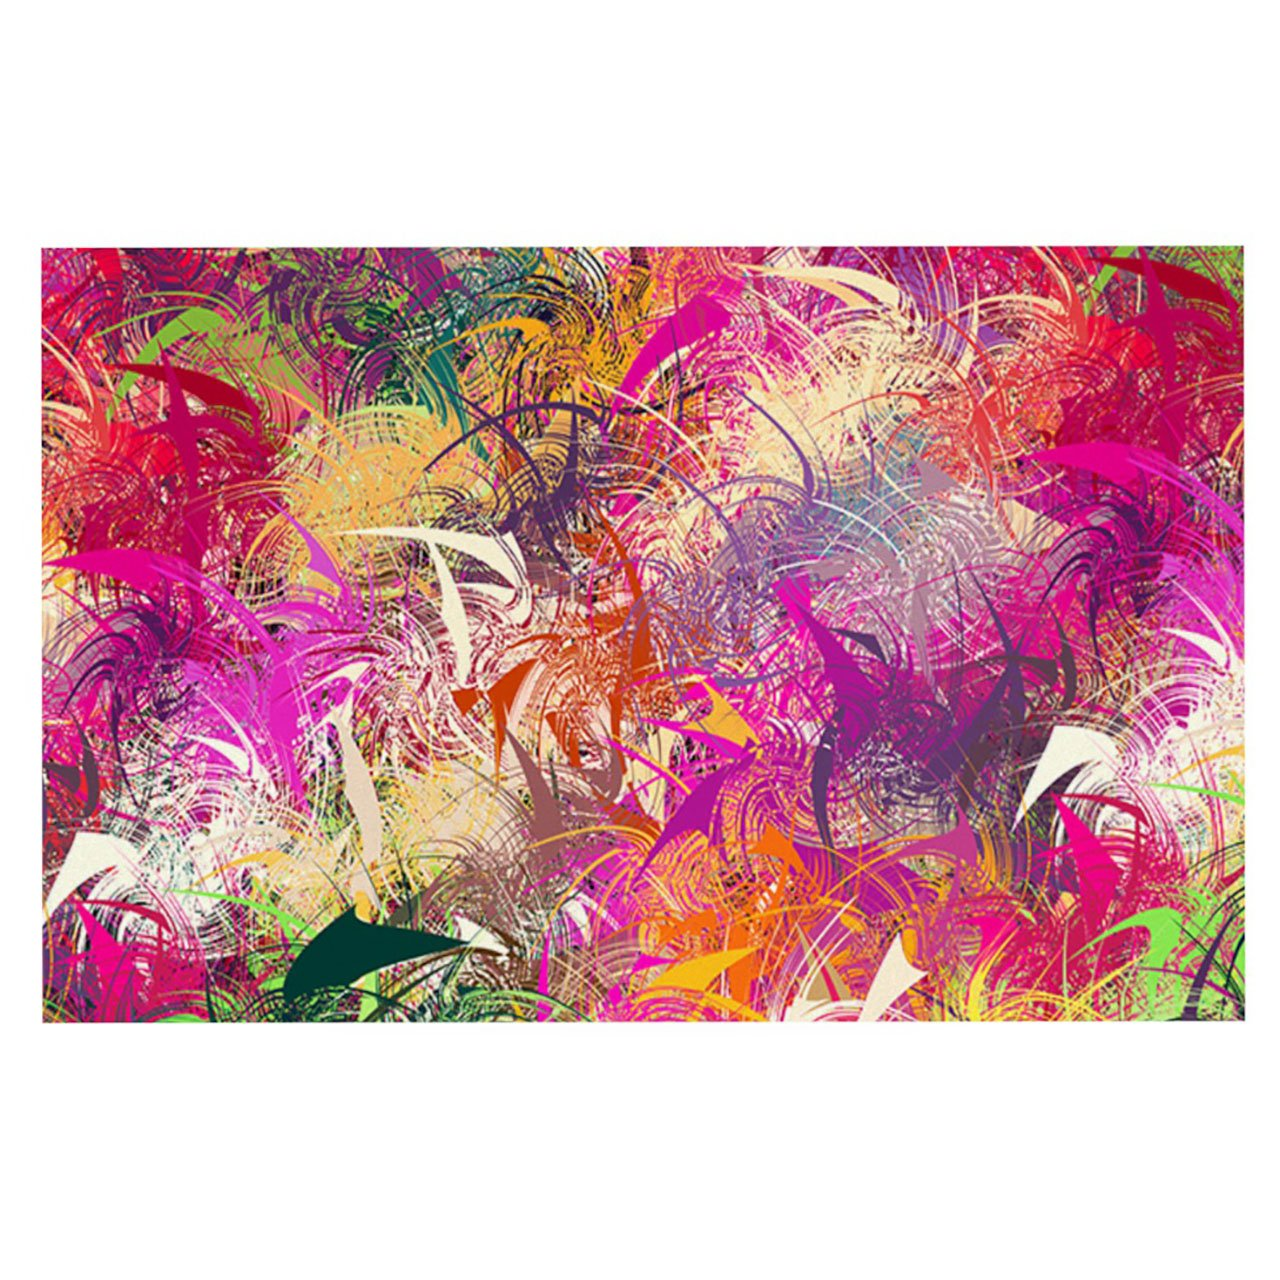 Kess InHouse Danny Ivan Splash Pet Bowl Placemat for Dog and Cat Feeding Mat, 18 by 13-Inch, Rainbow Abstract